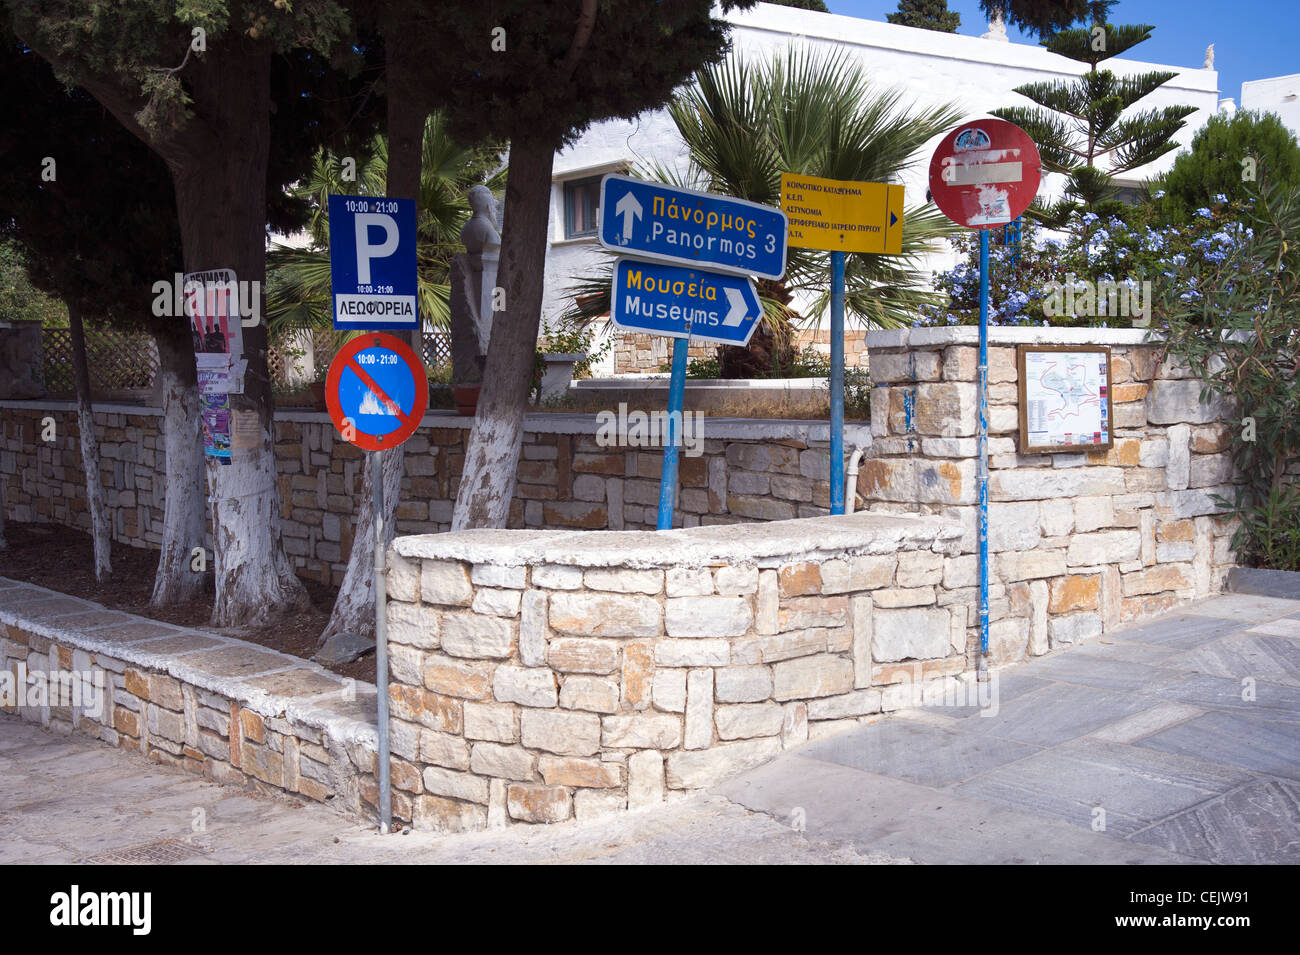 Traffic signs in the village of Pyrgos, on the Greek Cyclade island of Tinos. - Stock Image